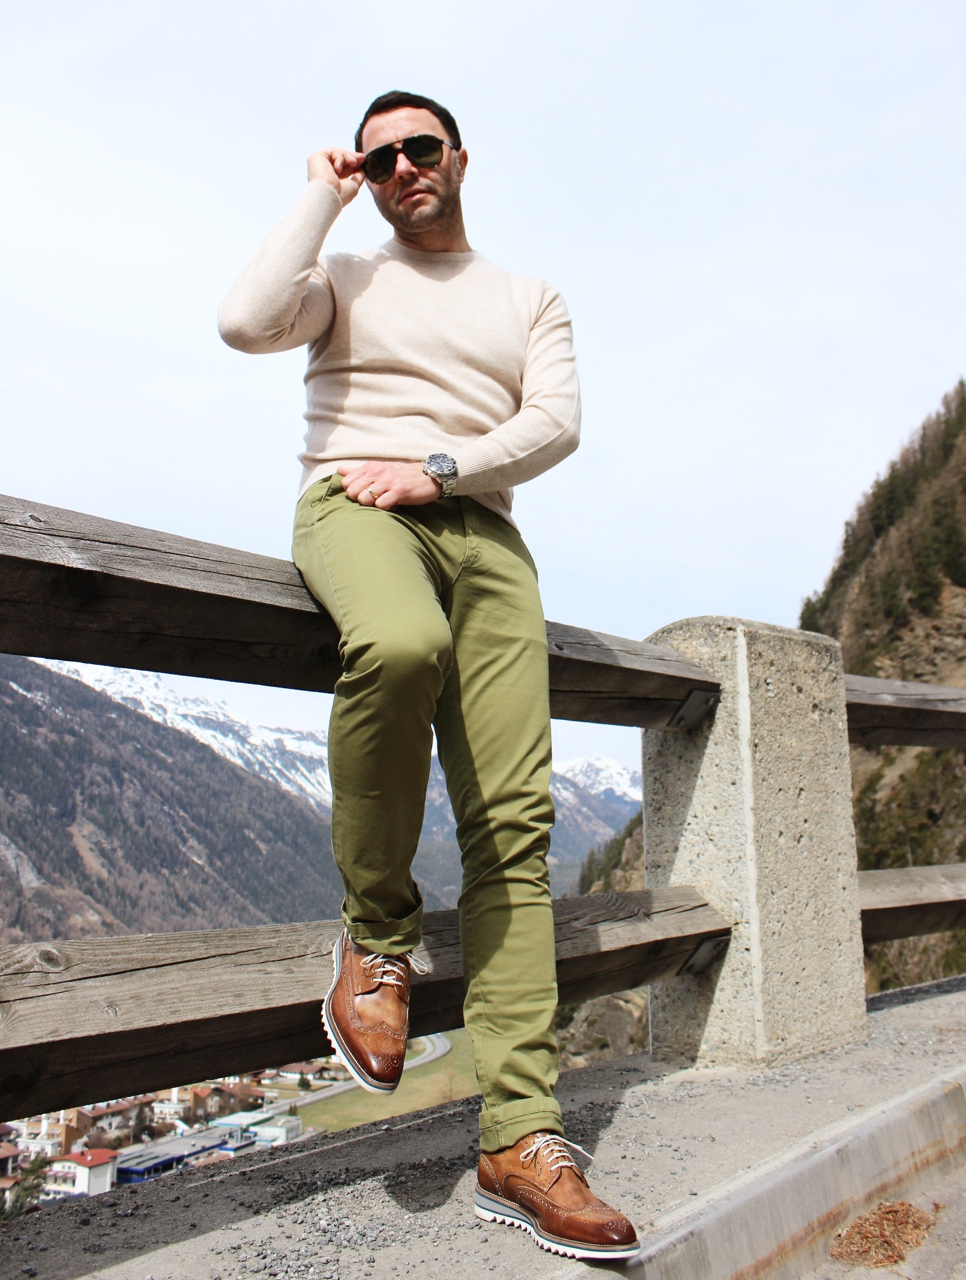 Cashmere geht immer REPEATcashmere Cashmere Fashion Styling Style Outfit LookBook Gucci Konstantin Starke Zara PepperAndGold Dirk